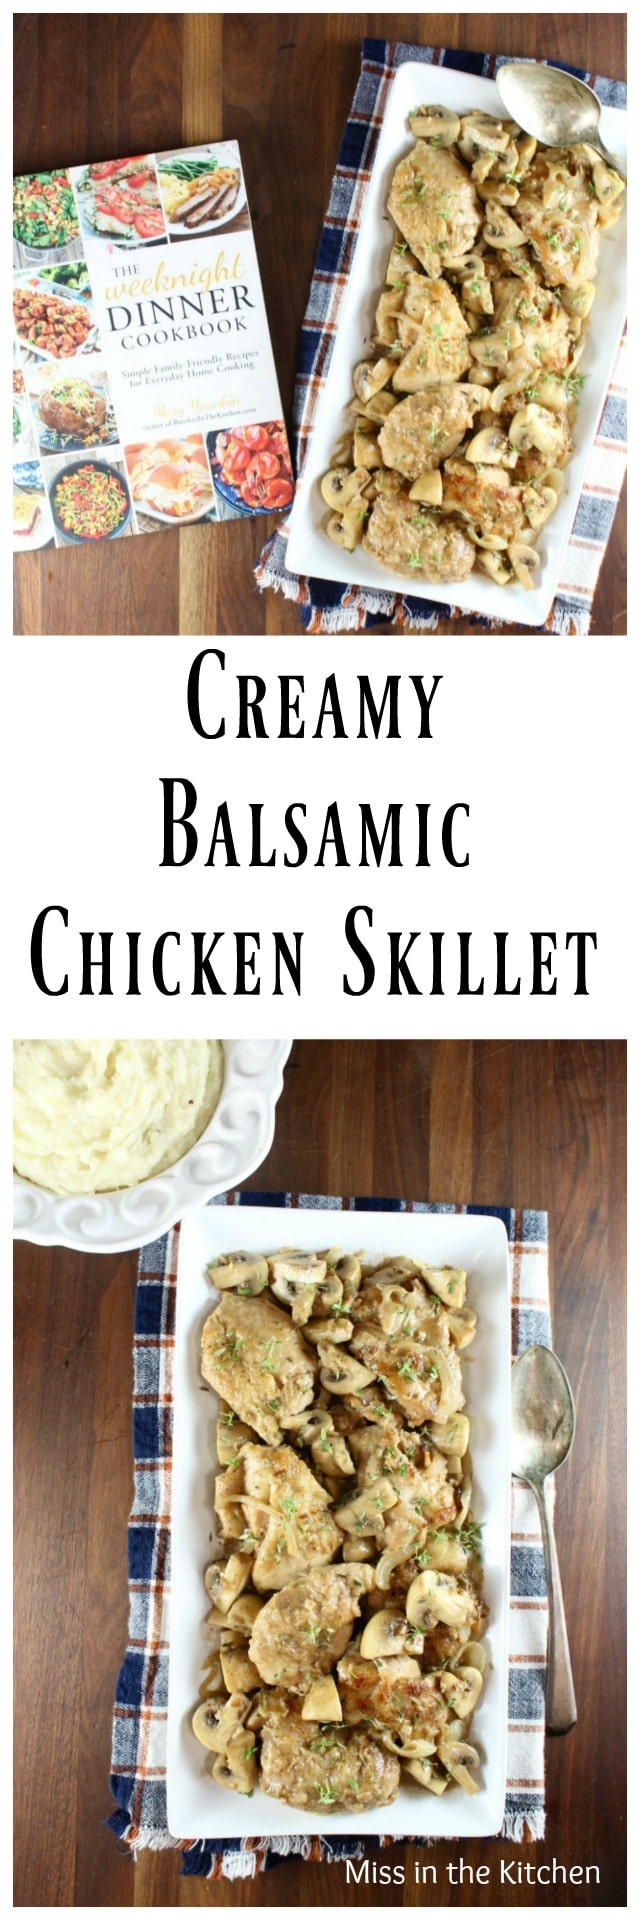 Creamy Balsamic Chicken Skillet Dinner Recipe from The Weeknight Dinner Cookbook ~ MissintheKitchen.com